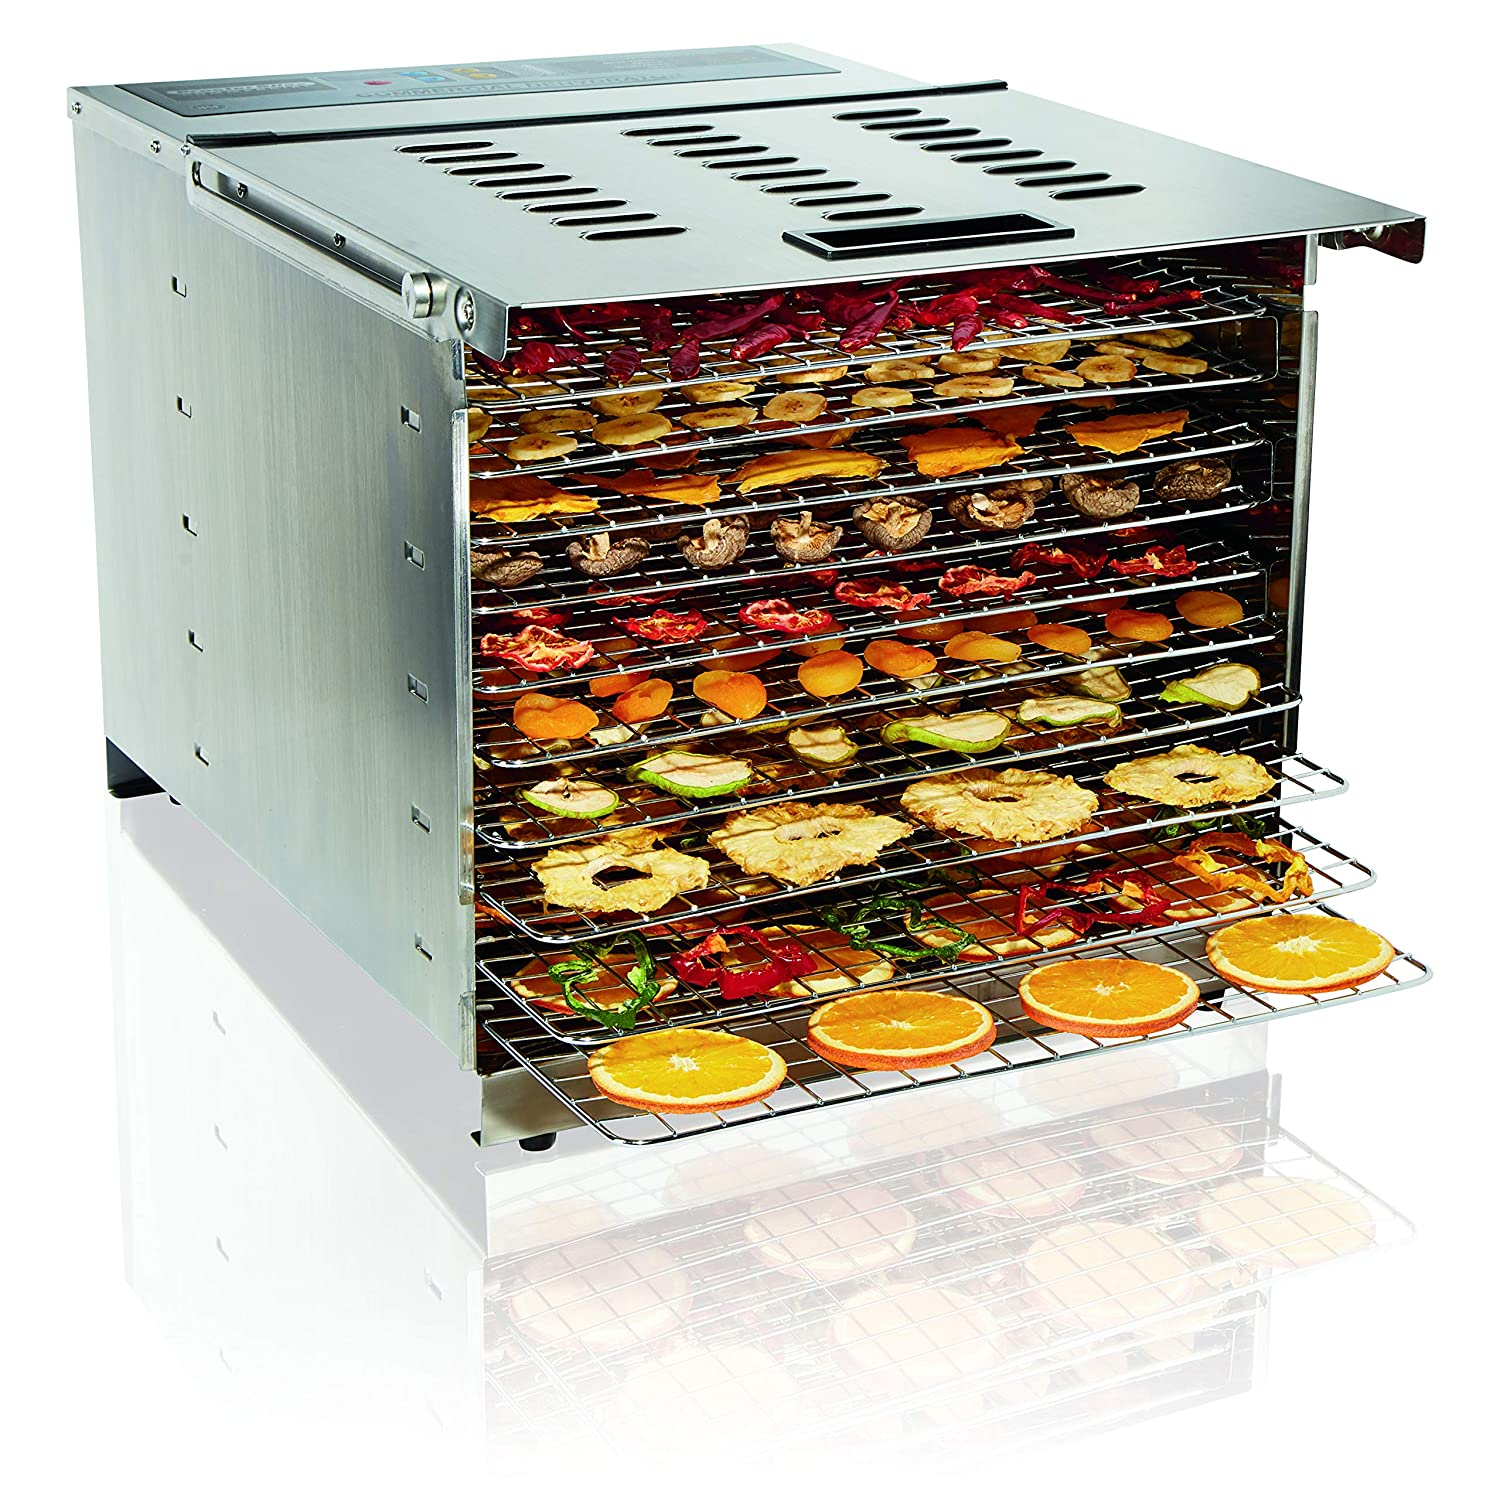 Proctor Silex Commercial 78450 Food Dehydrator, 10 Trays, 1200 Watts, Digital Timer and Controls, NSF Approved